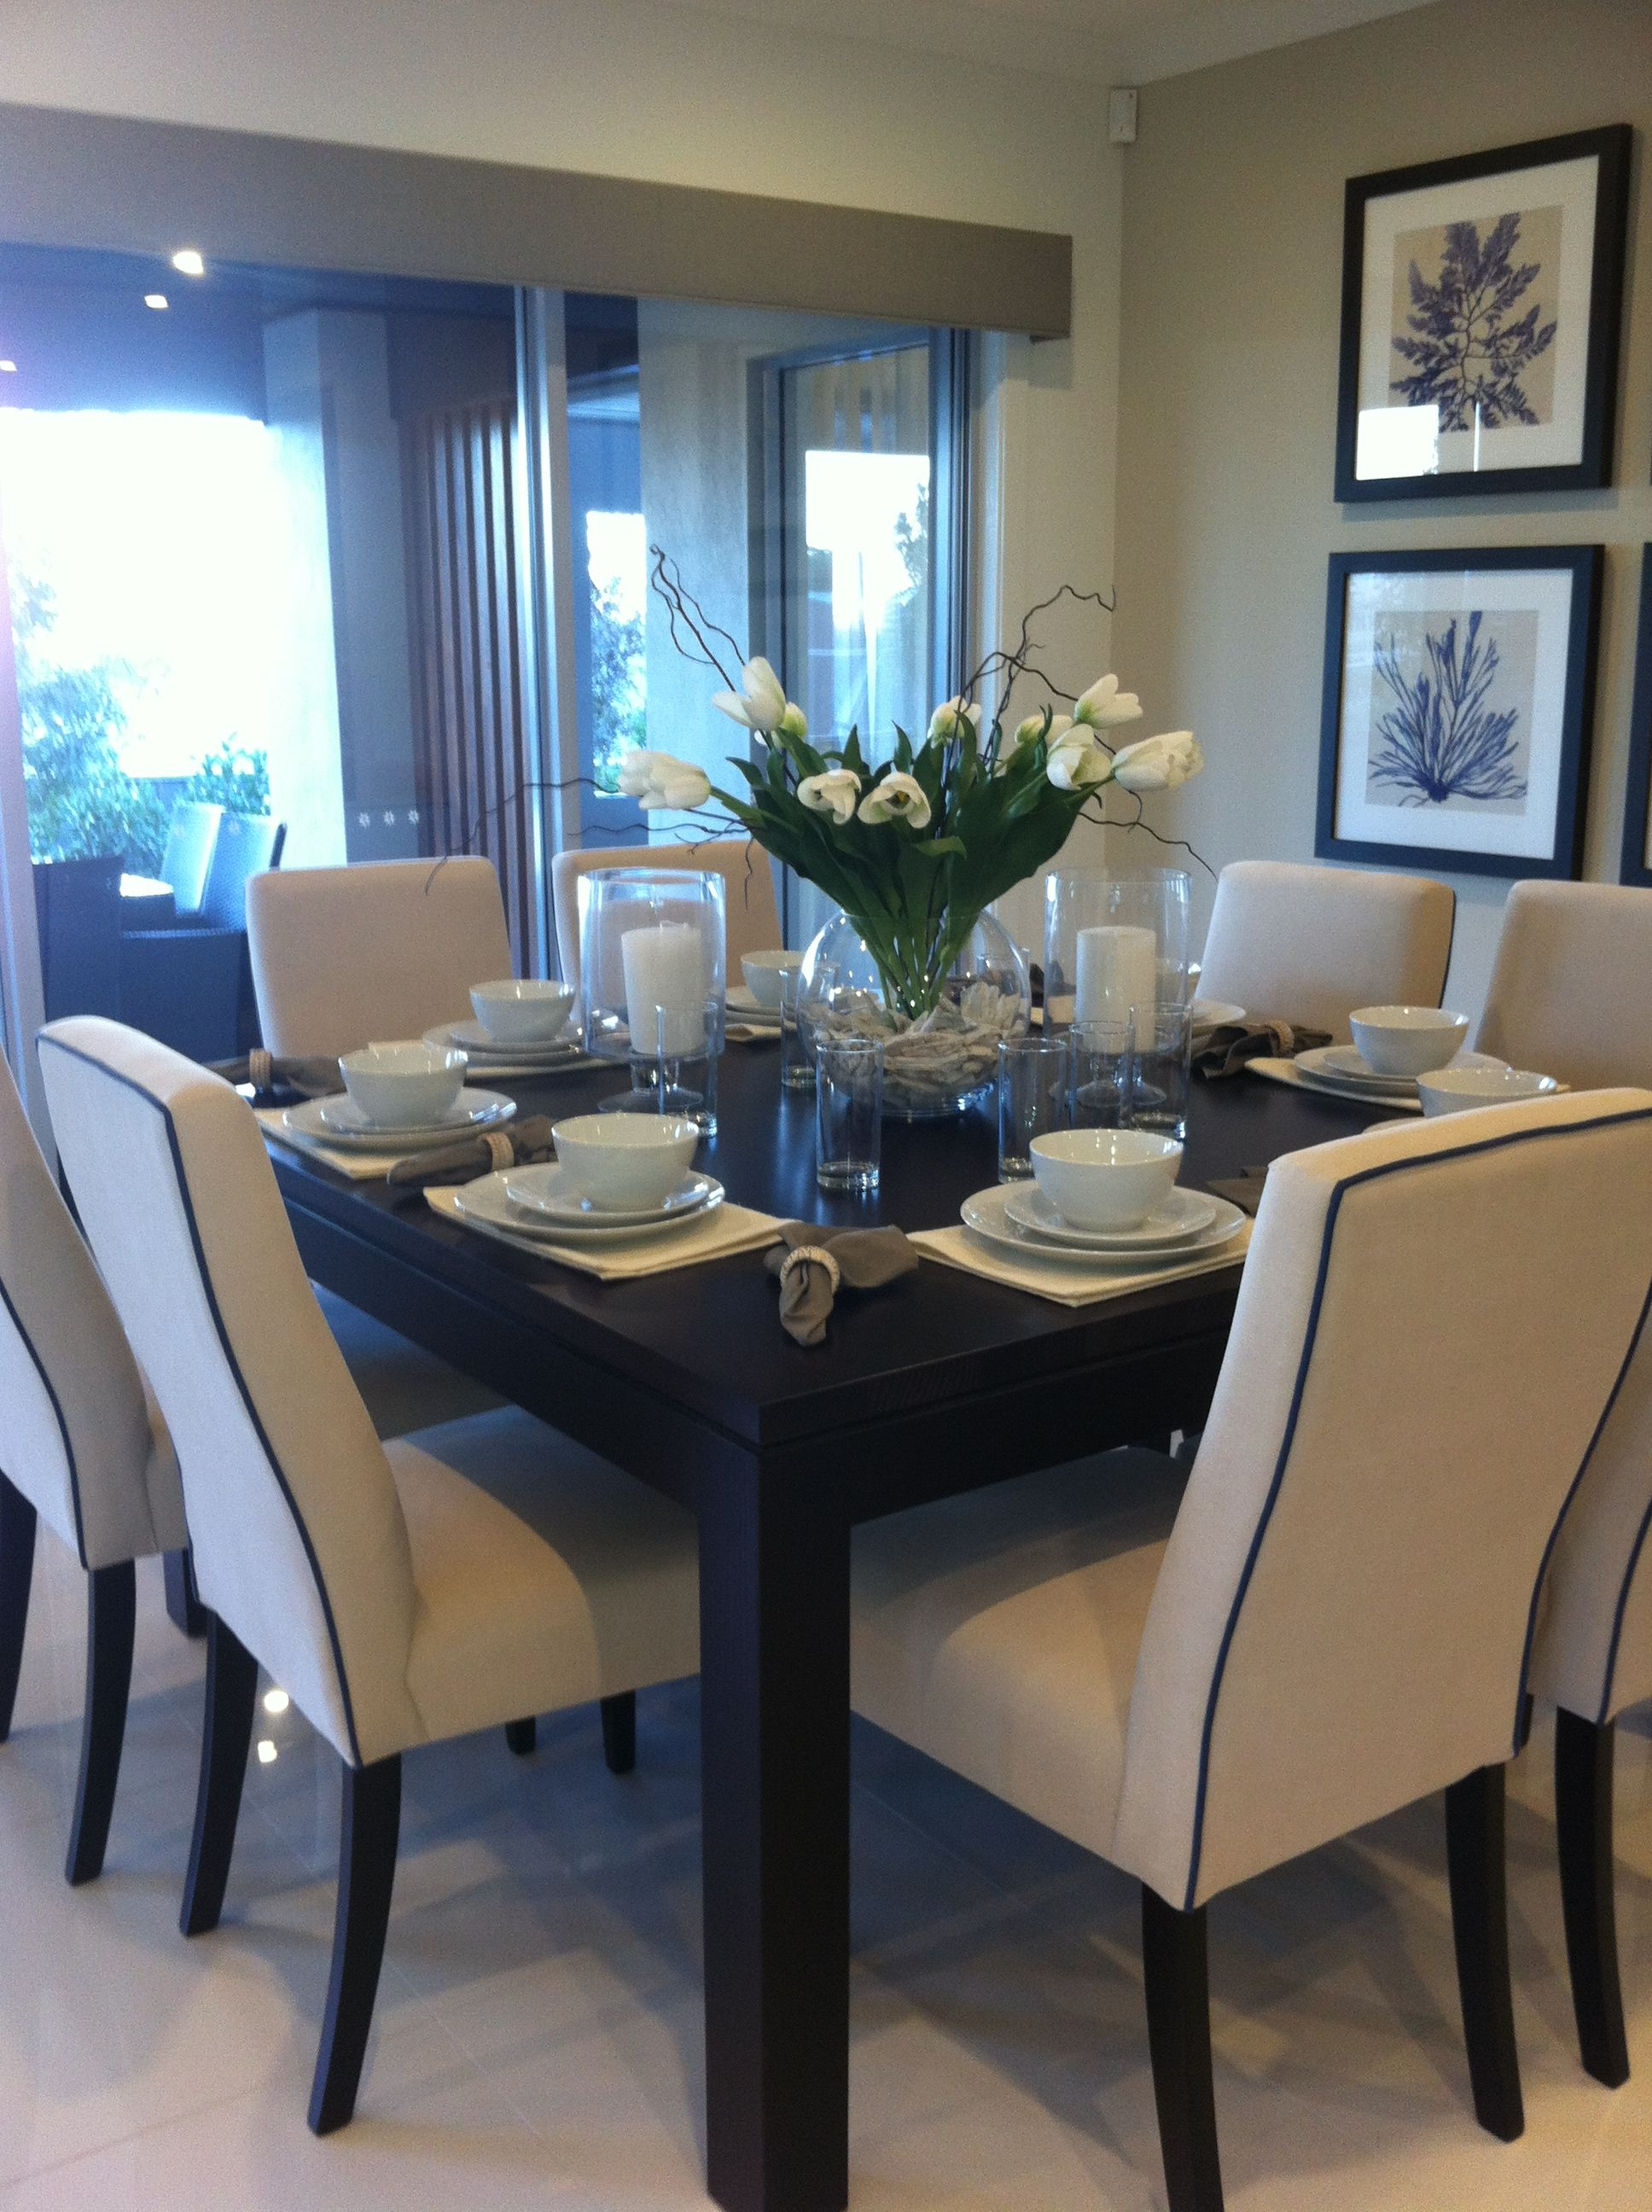 Staging The Dining Room - Dinner table for 12